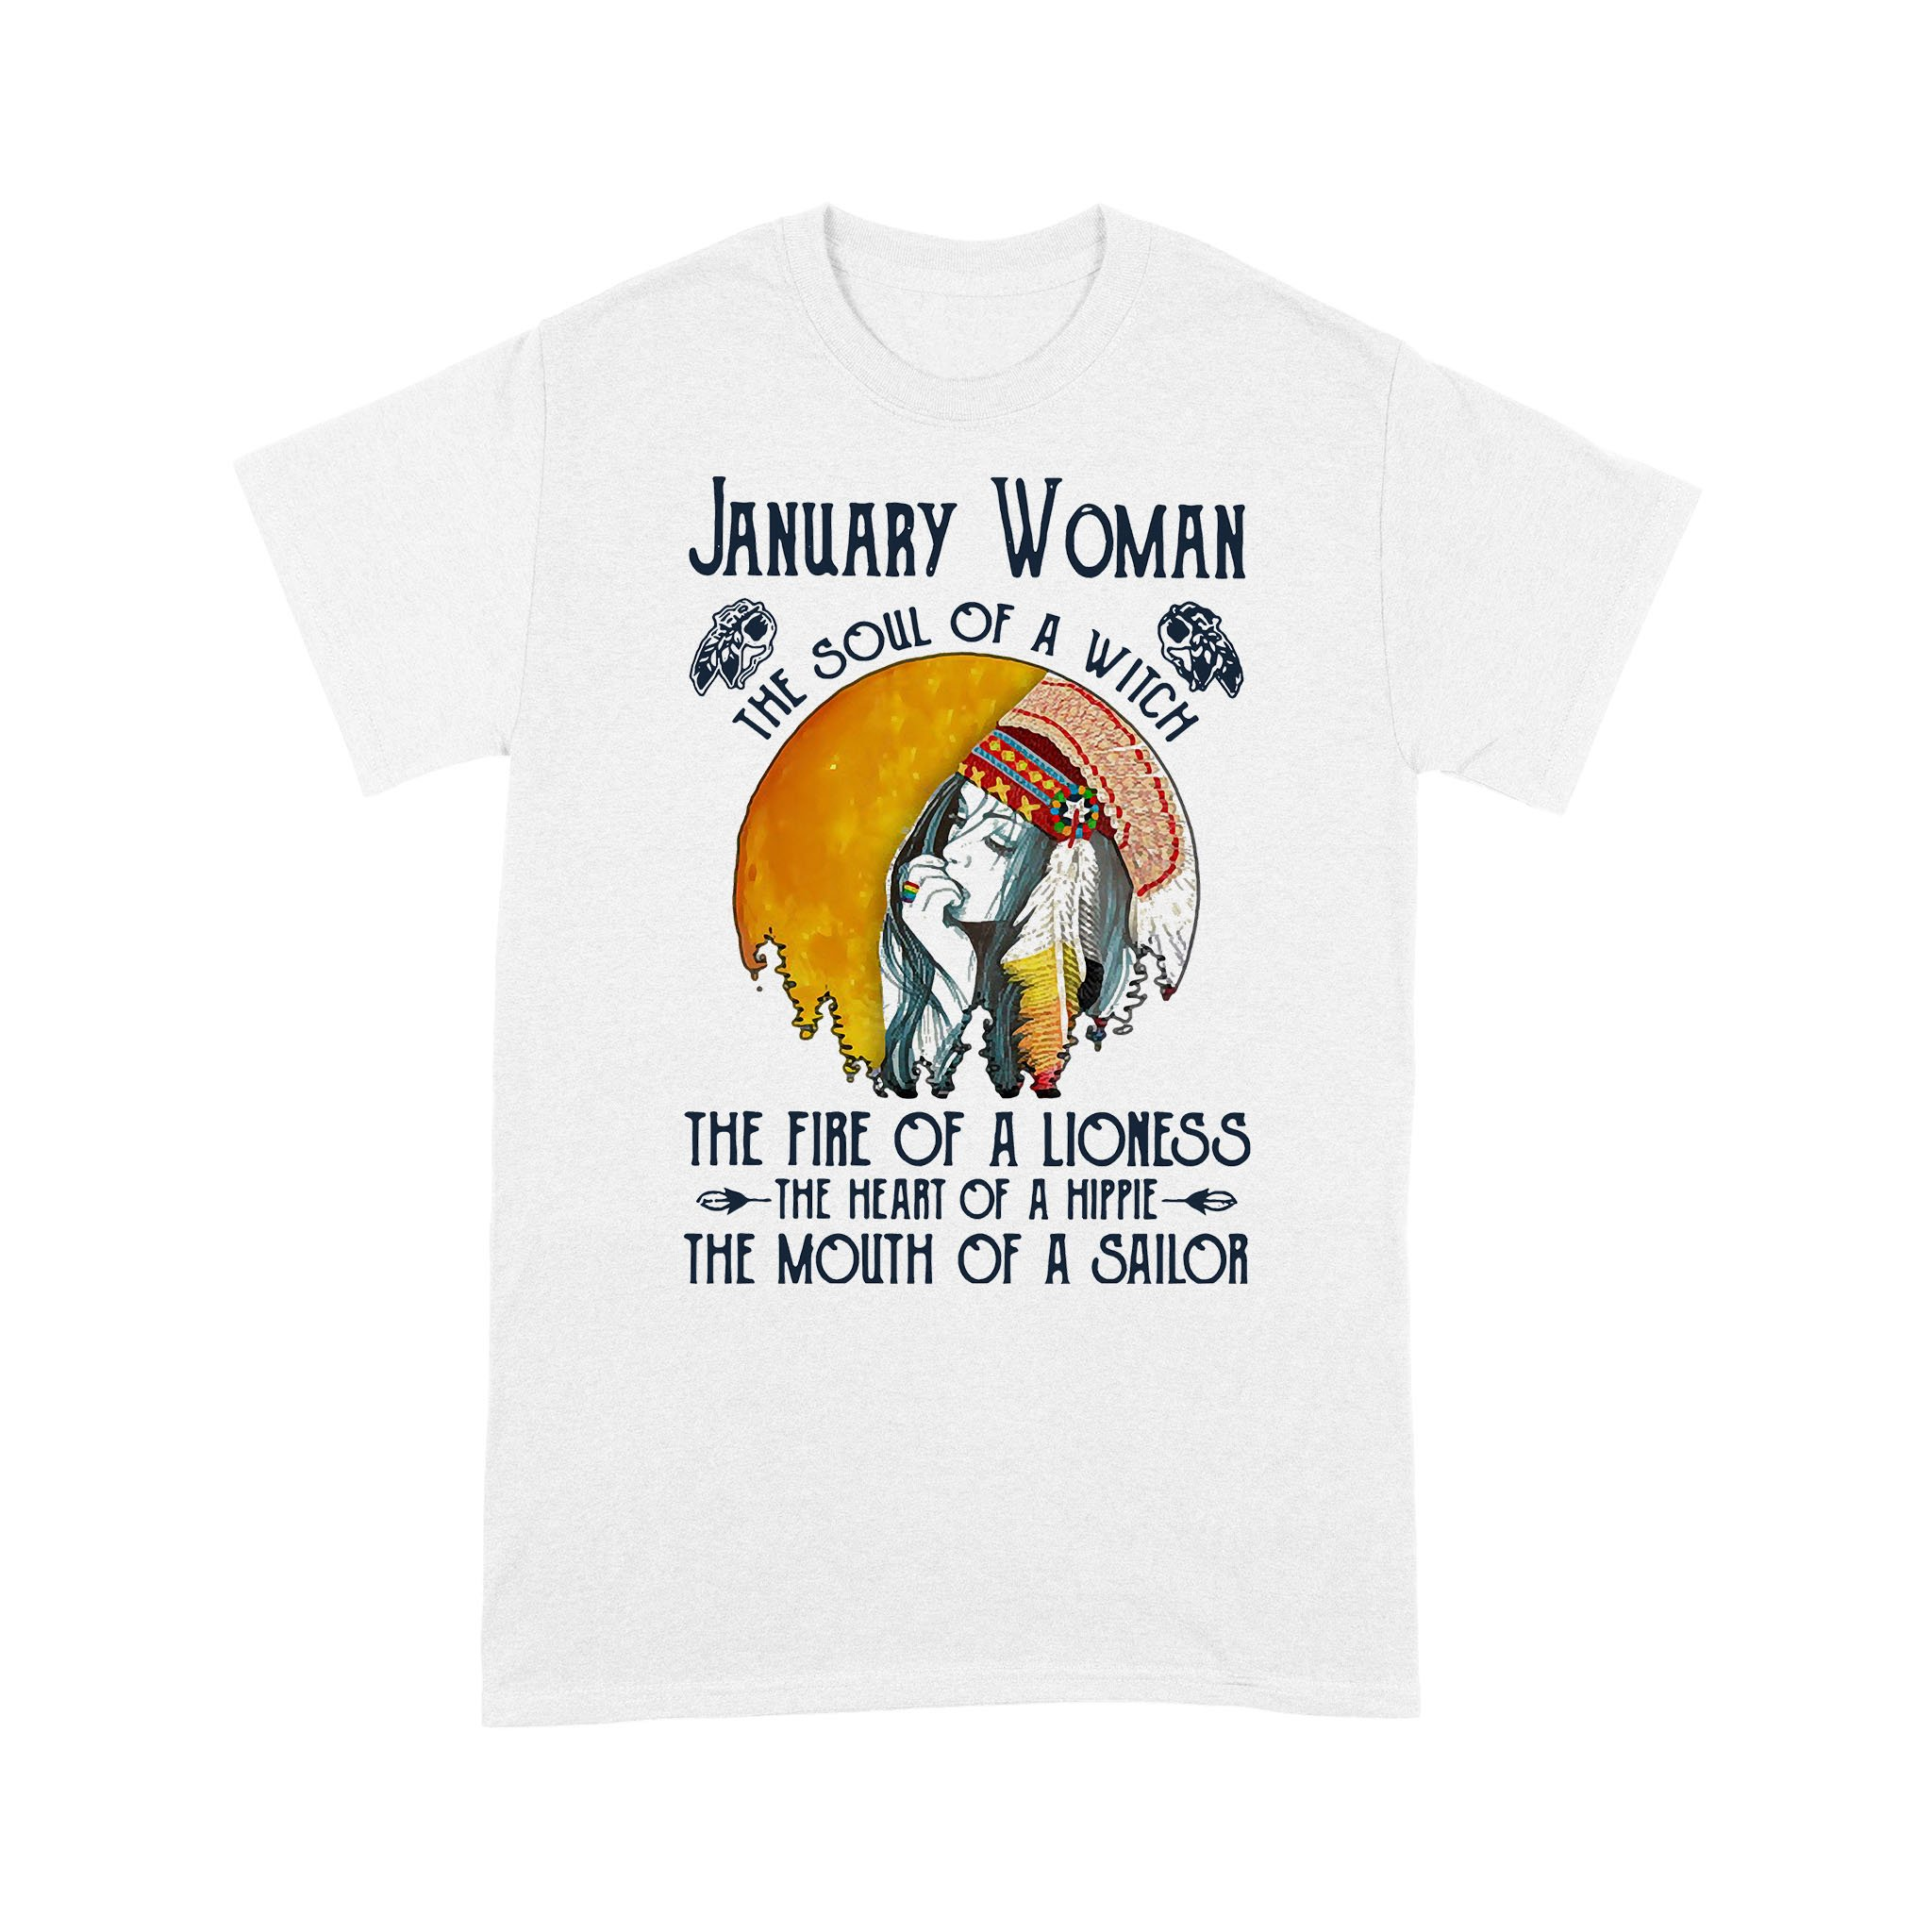 January Native Woman The Soul Of A Witch The Fire Of A Lioness The Heart Of A Hippie The Mouth Of A Sailor T-shirt